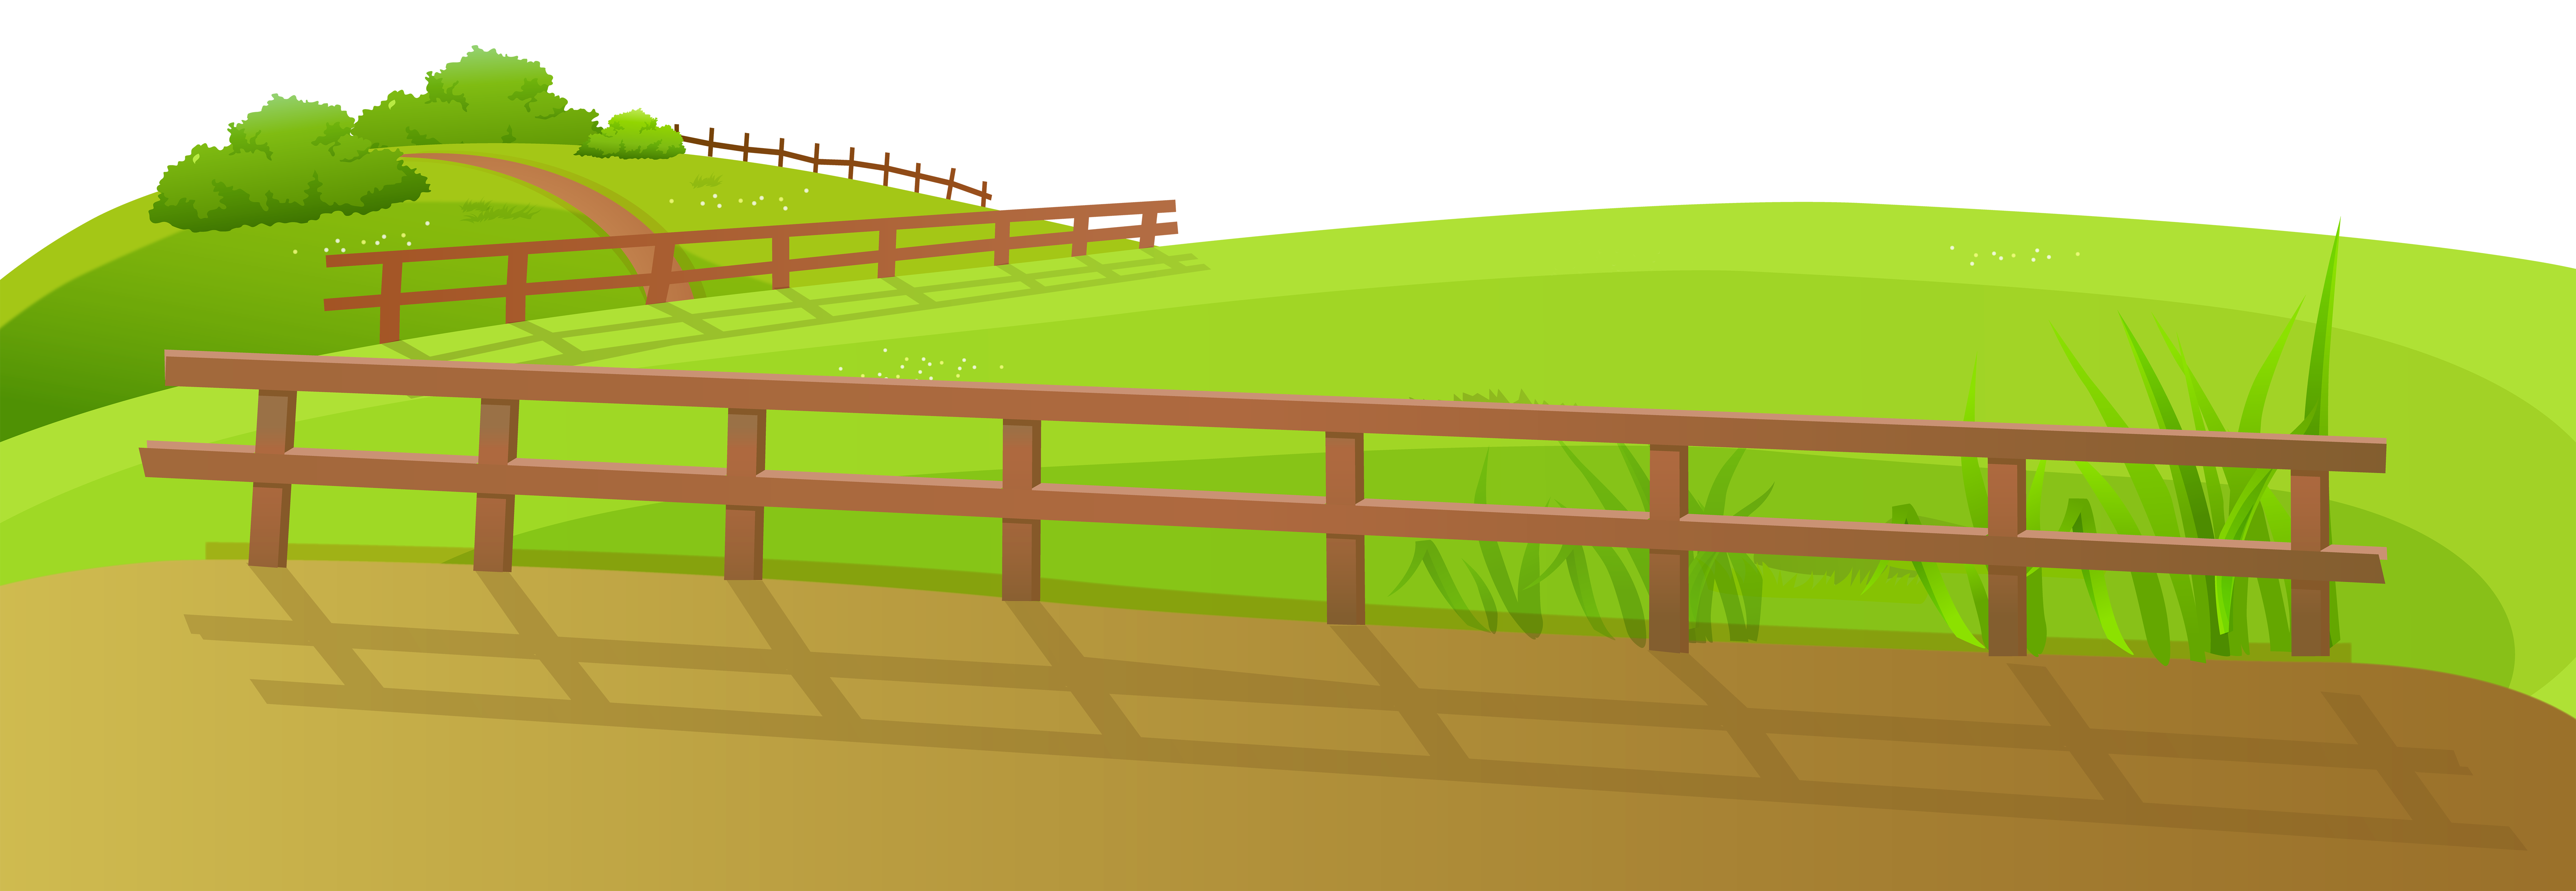 Ground with fence png. Clipart grass zoo